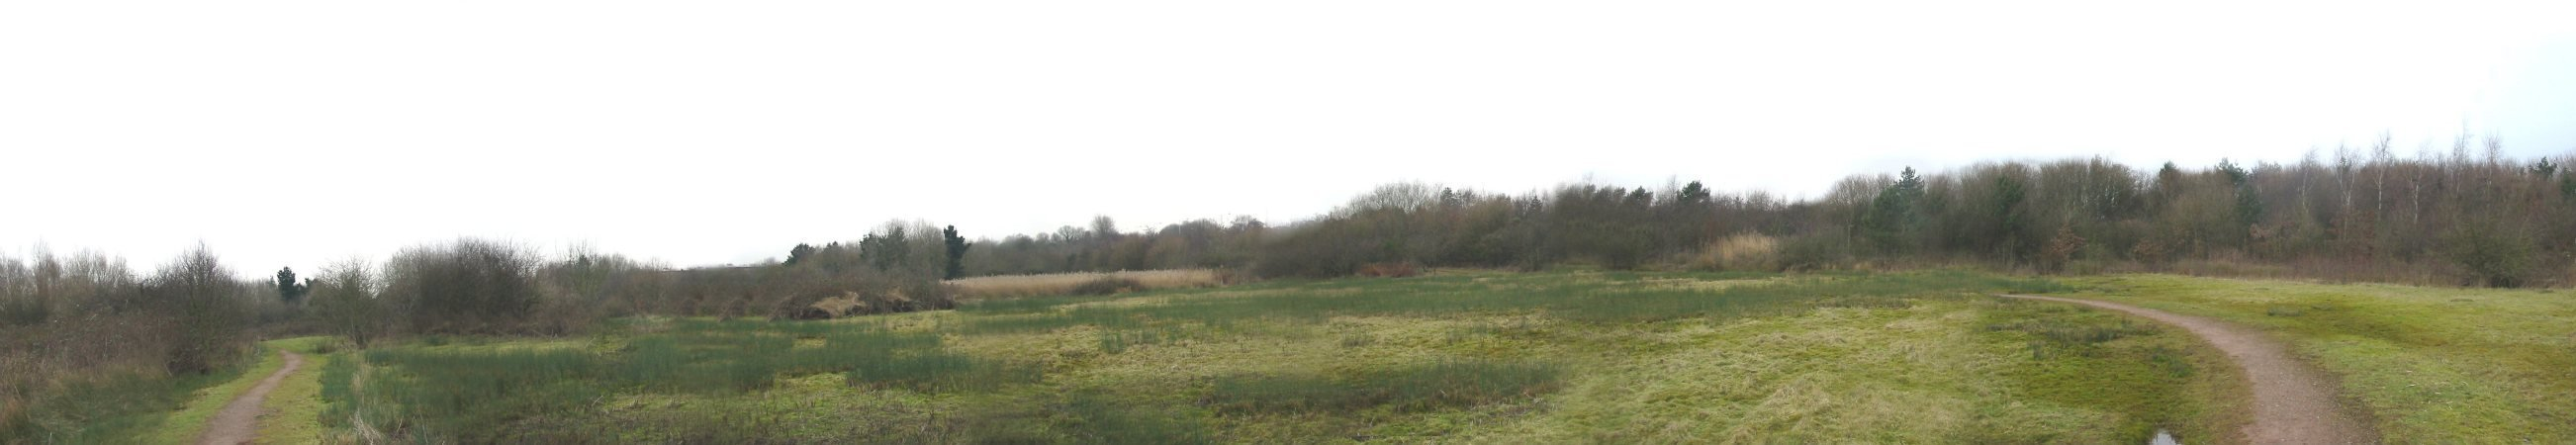 Scroll left and right